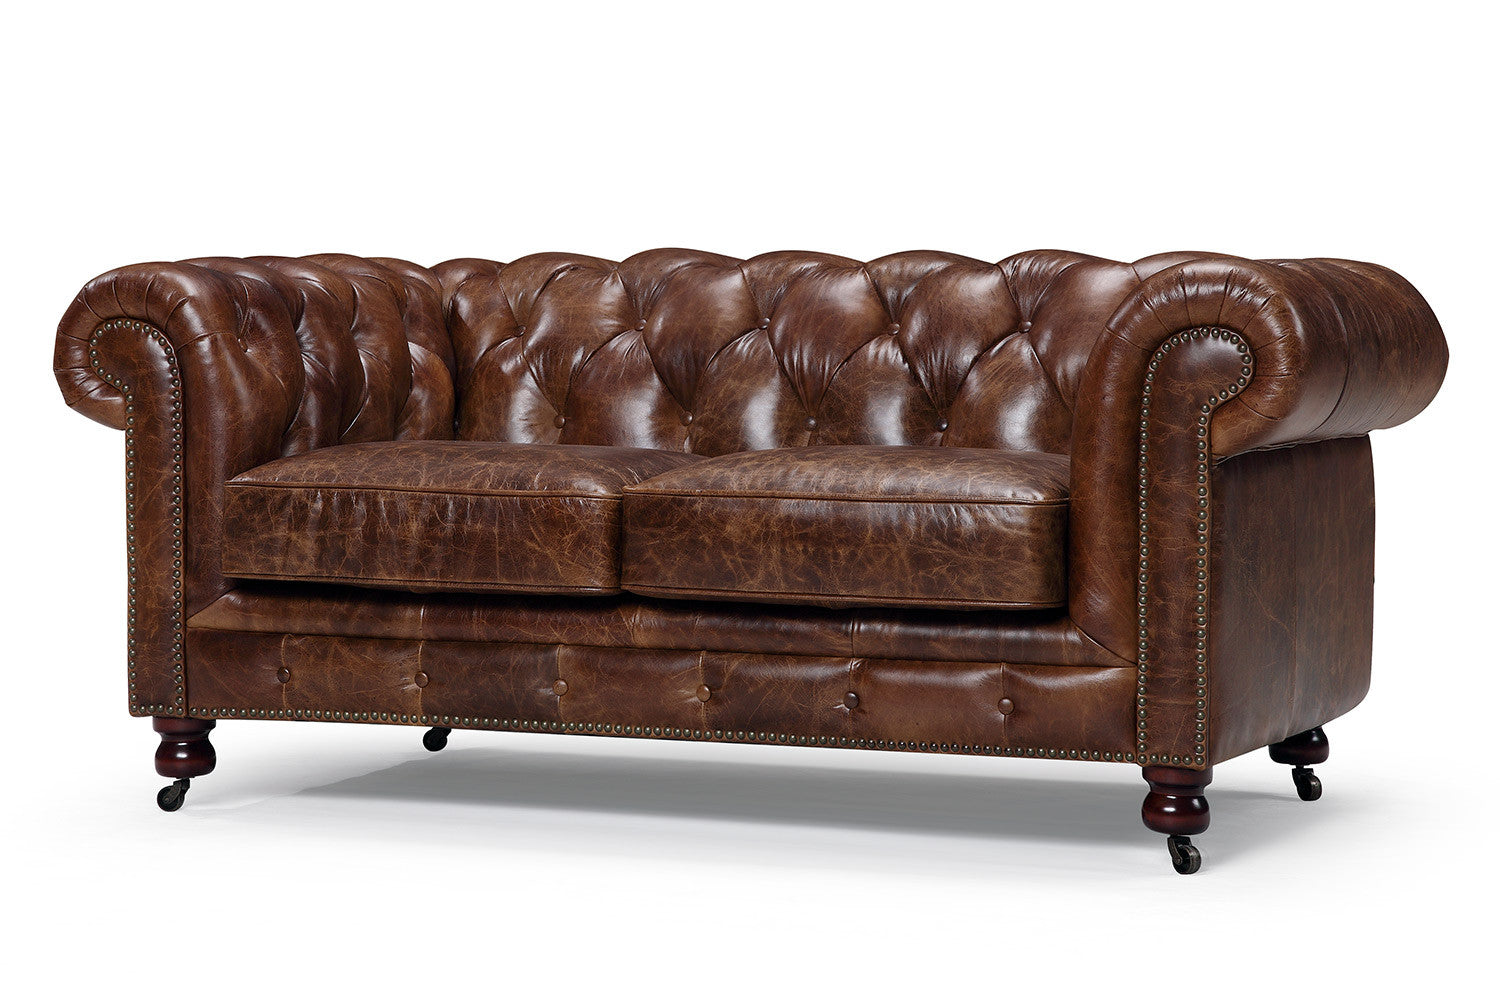 Canap chesterfield en cuir kensington 2 places rose moore for Canape chesterfield cuir 2 places